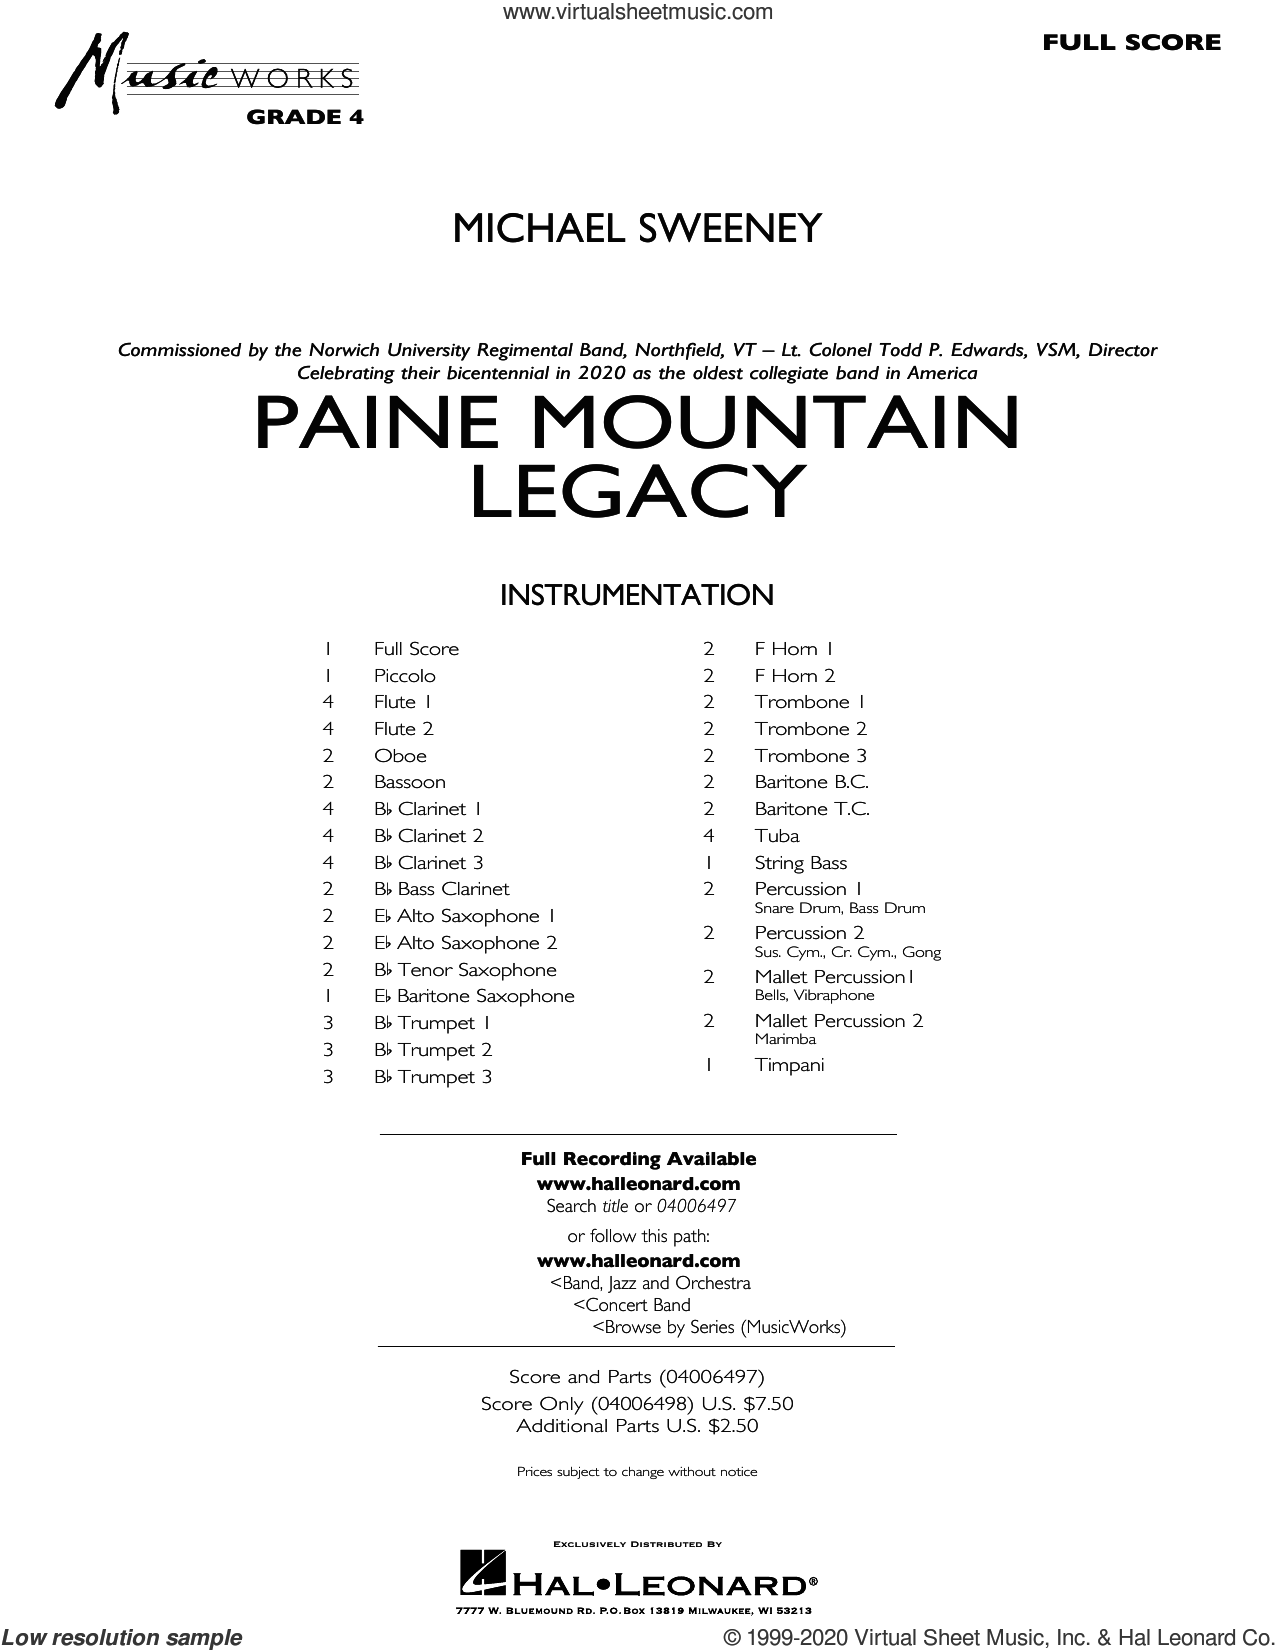 Paine Mountain Legacy (COMPLETE) sheet music for concert band by Michael Sweeney, intermediate skill level